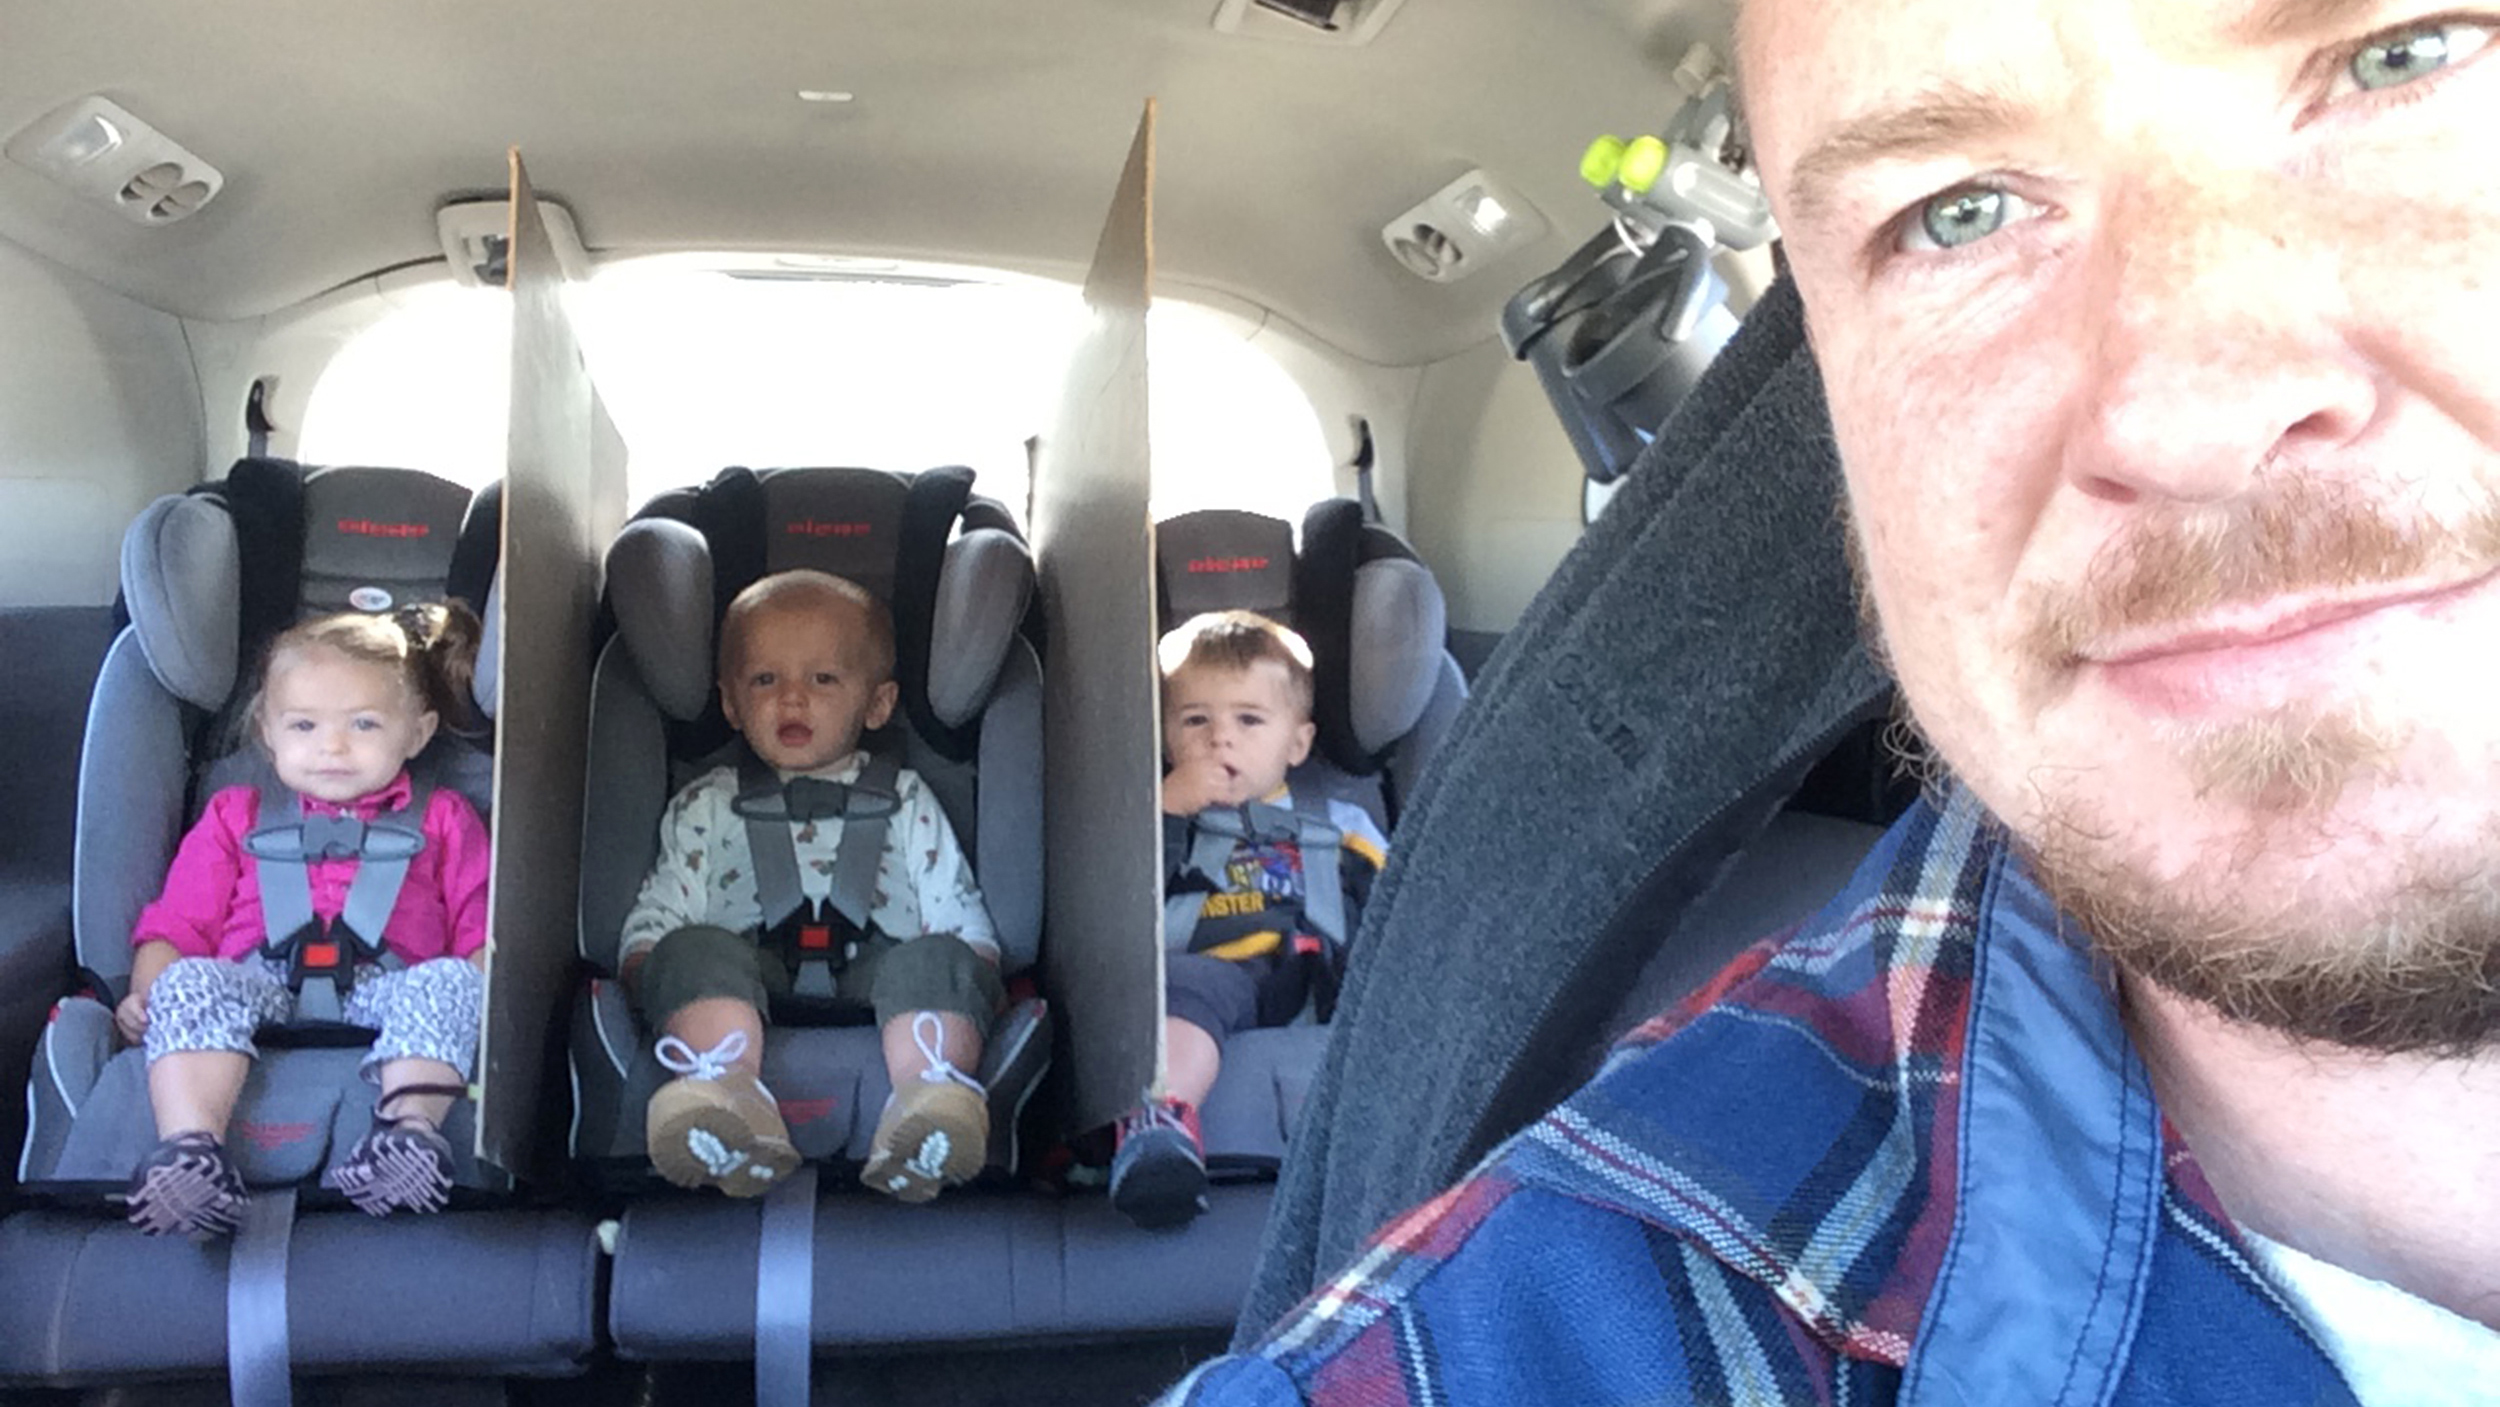 Dad Of Triplets Creates Car Dividers To Stop Backseat Fights